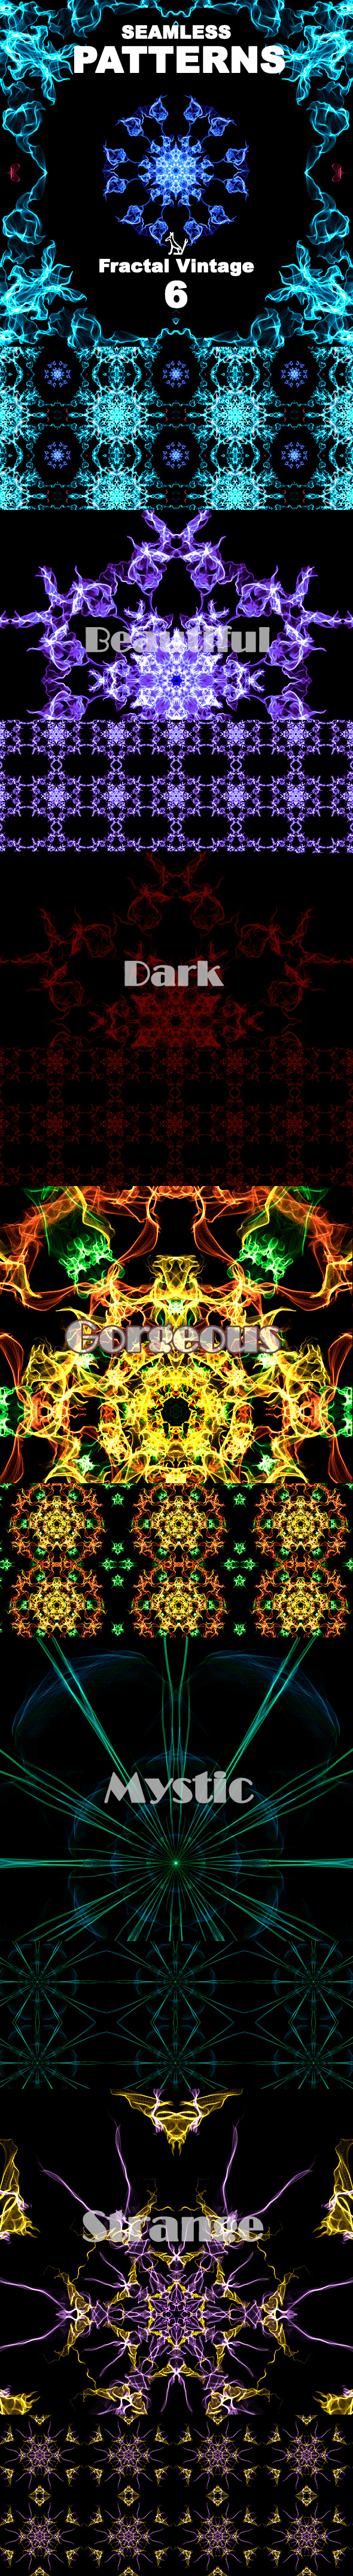 6 Fractal Patterns - Abstract Textures / Fills / Patterns